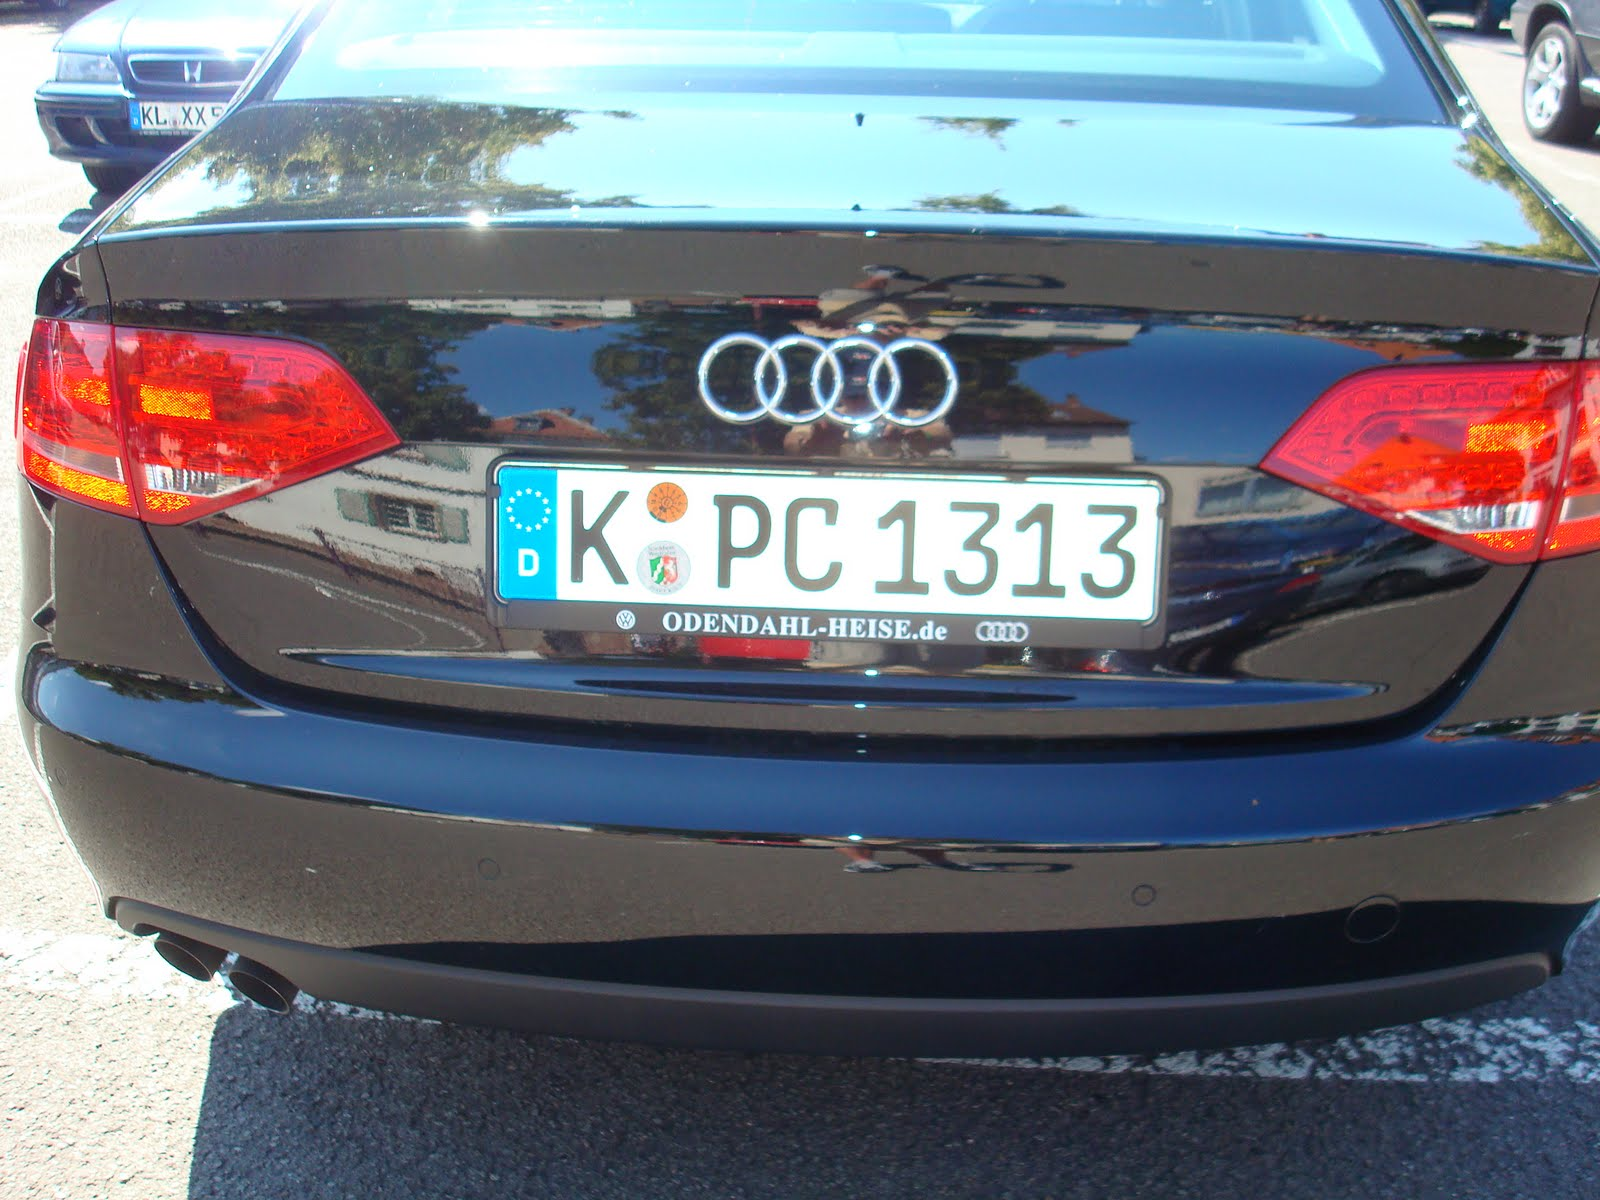 ROWDY IN GERMANY: German License Plates